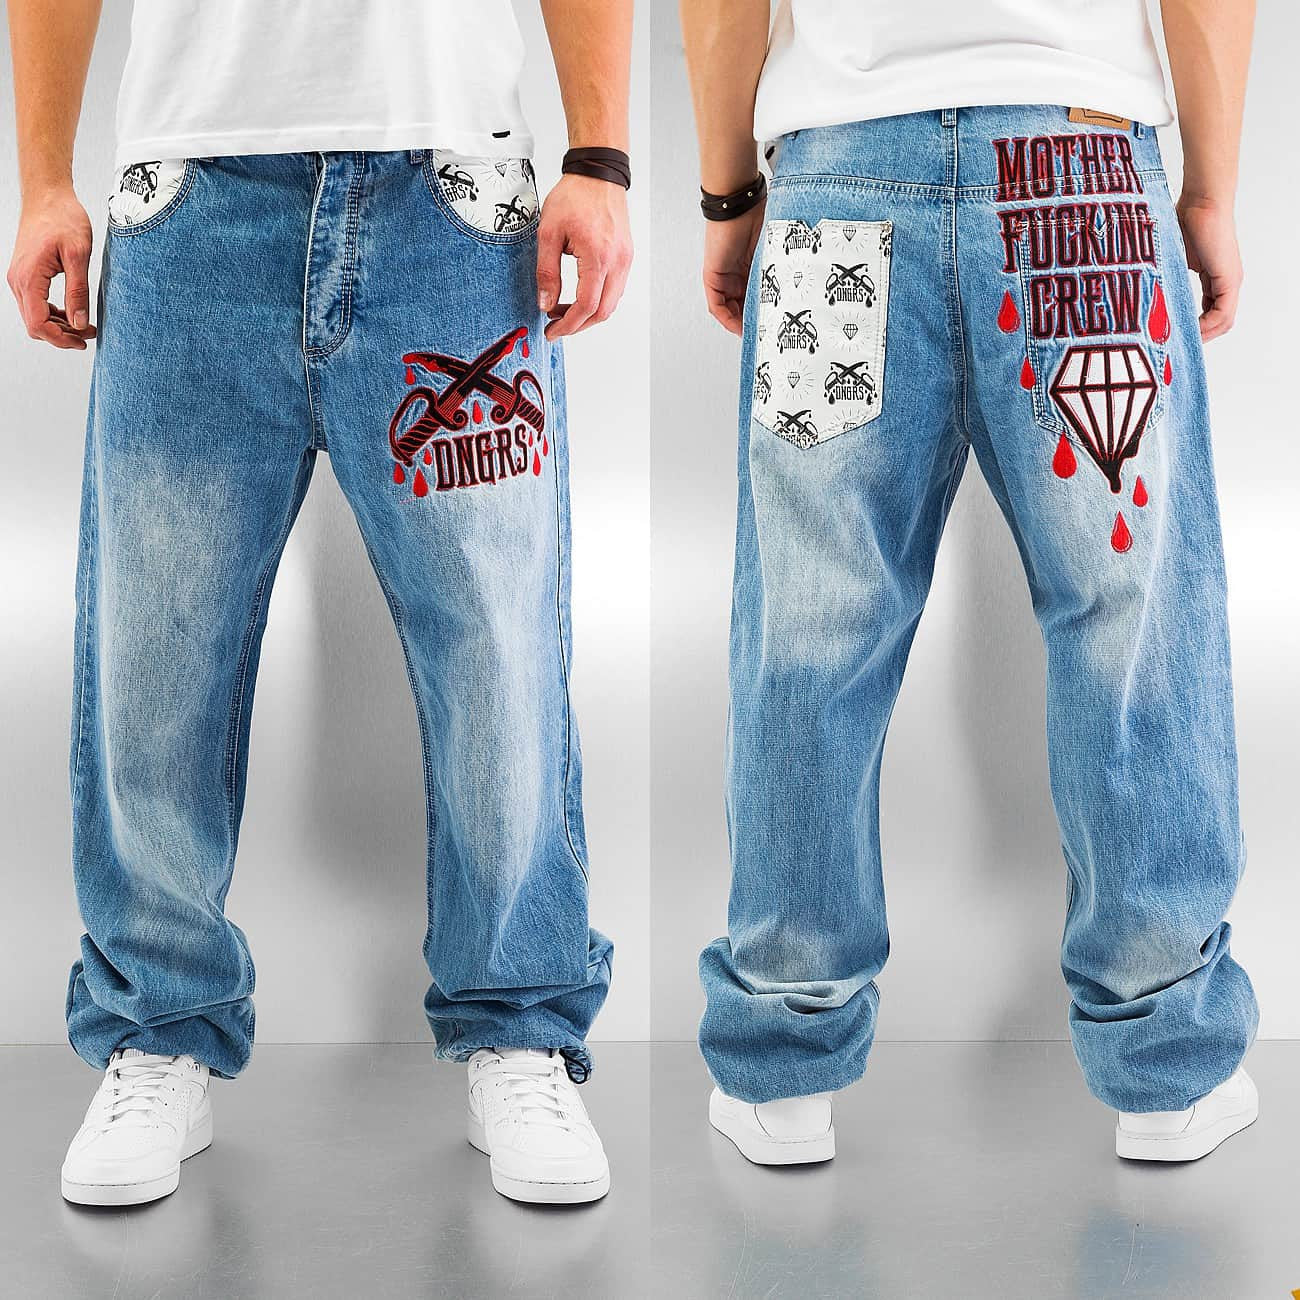 Dangerous DNGRS Mother Fucking Crew Baggy Jeans  Blue